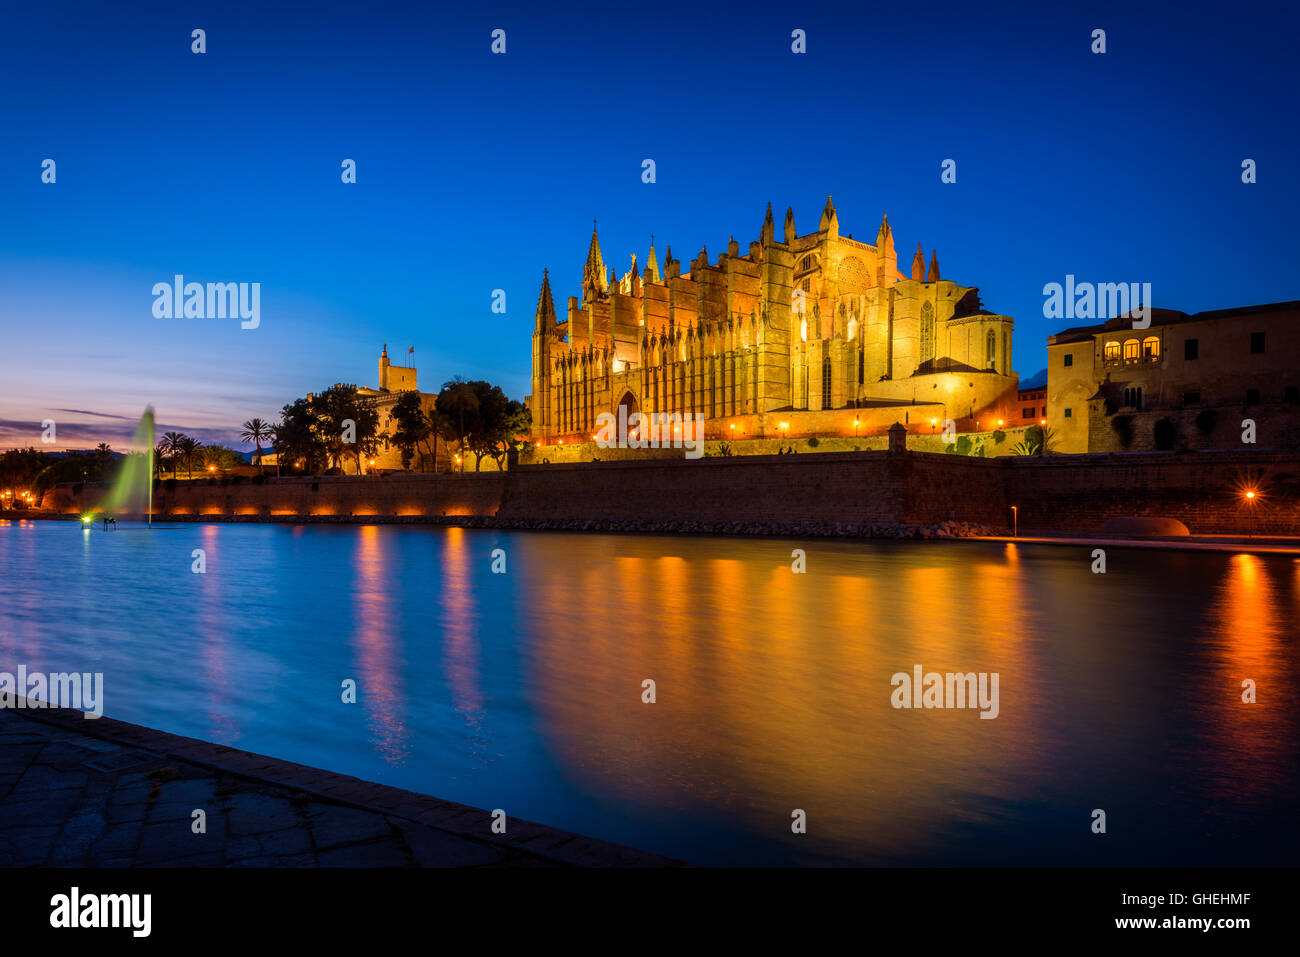 Cathedral of Palma de Mallorca, Spain at sunset - Stock Image